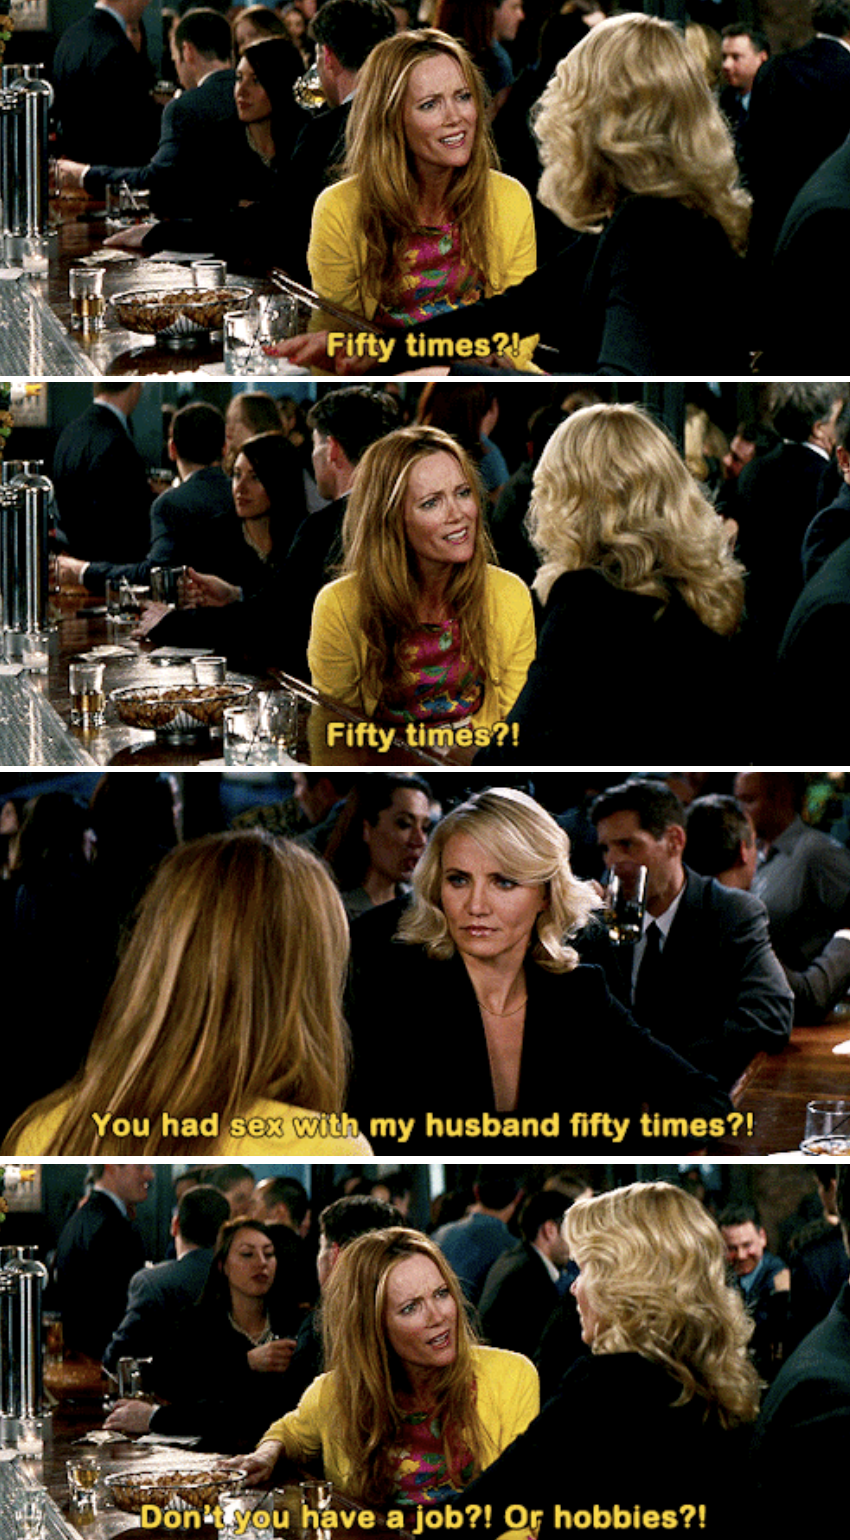 Kate at the bar with Carly, in disbelief that Carly had sex with her husband 50 times